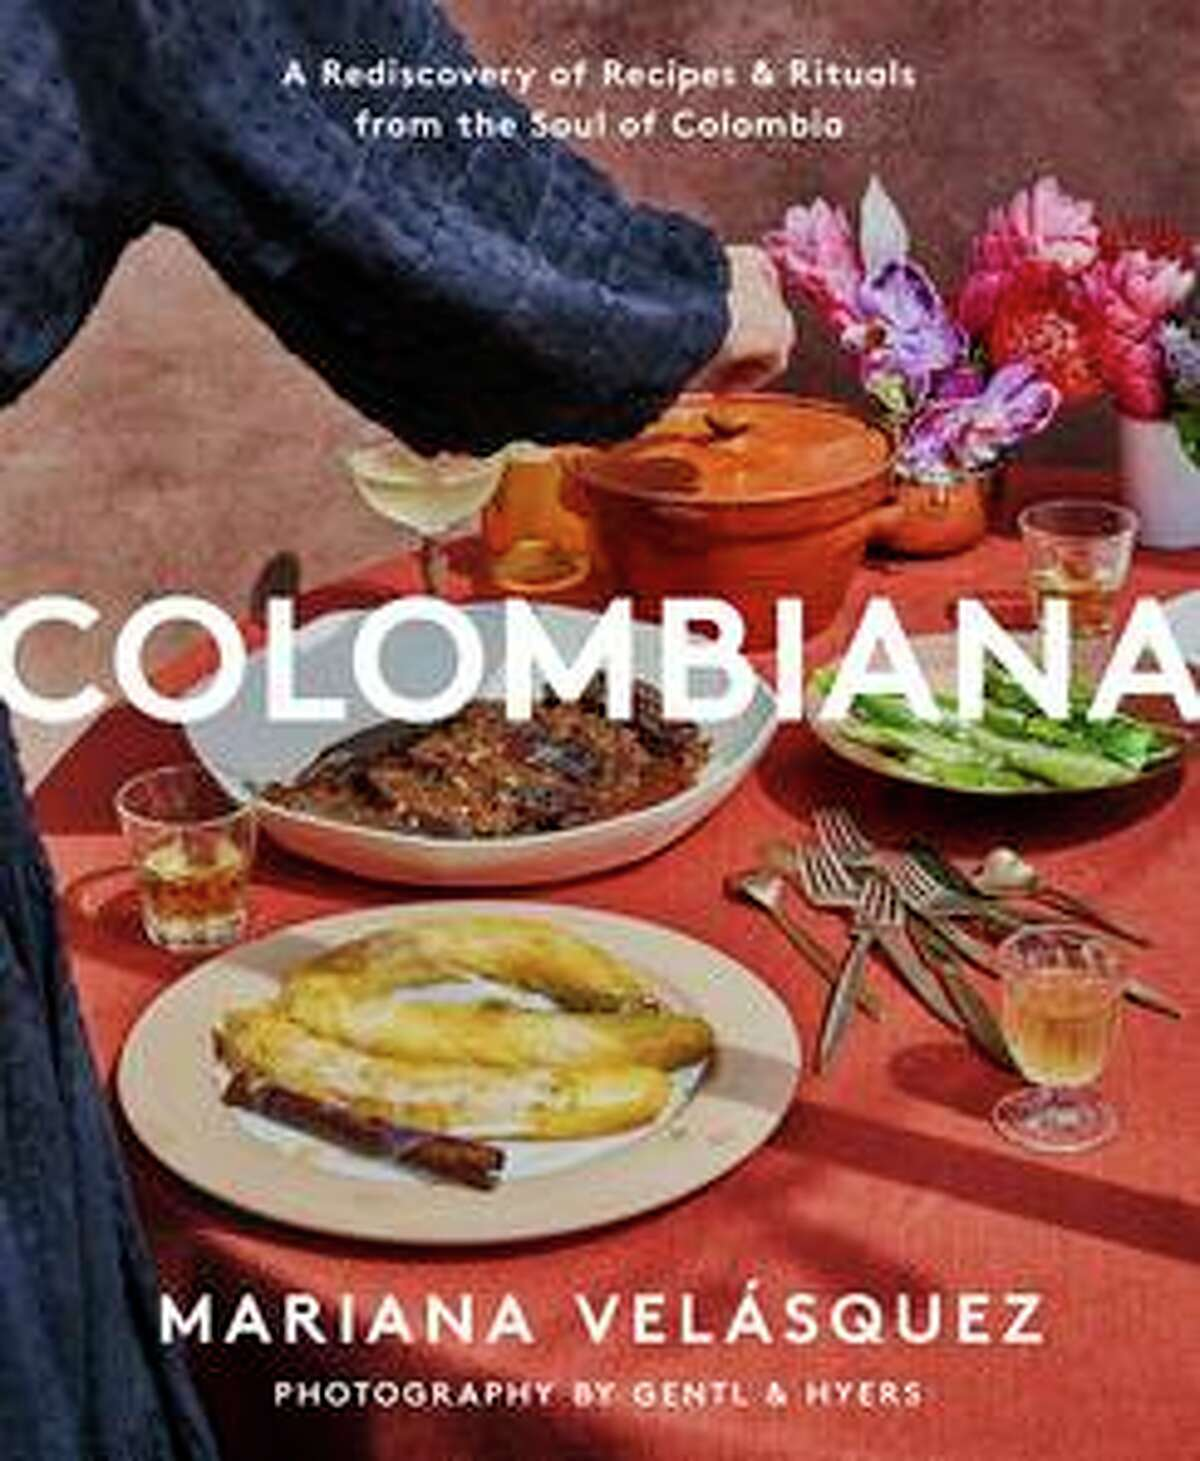 """The cover of """"Colombiana: A Rediscovery of Recipes & Rituals from the Soul of Colombia"""" by Mariana Velásquez."""